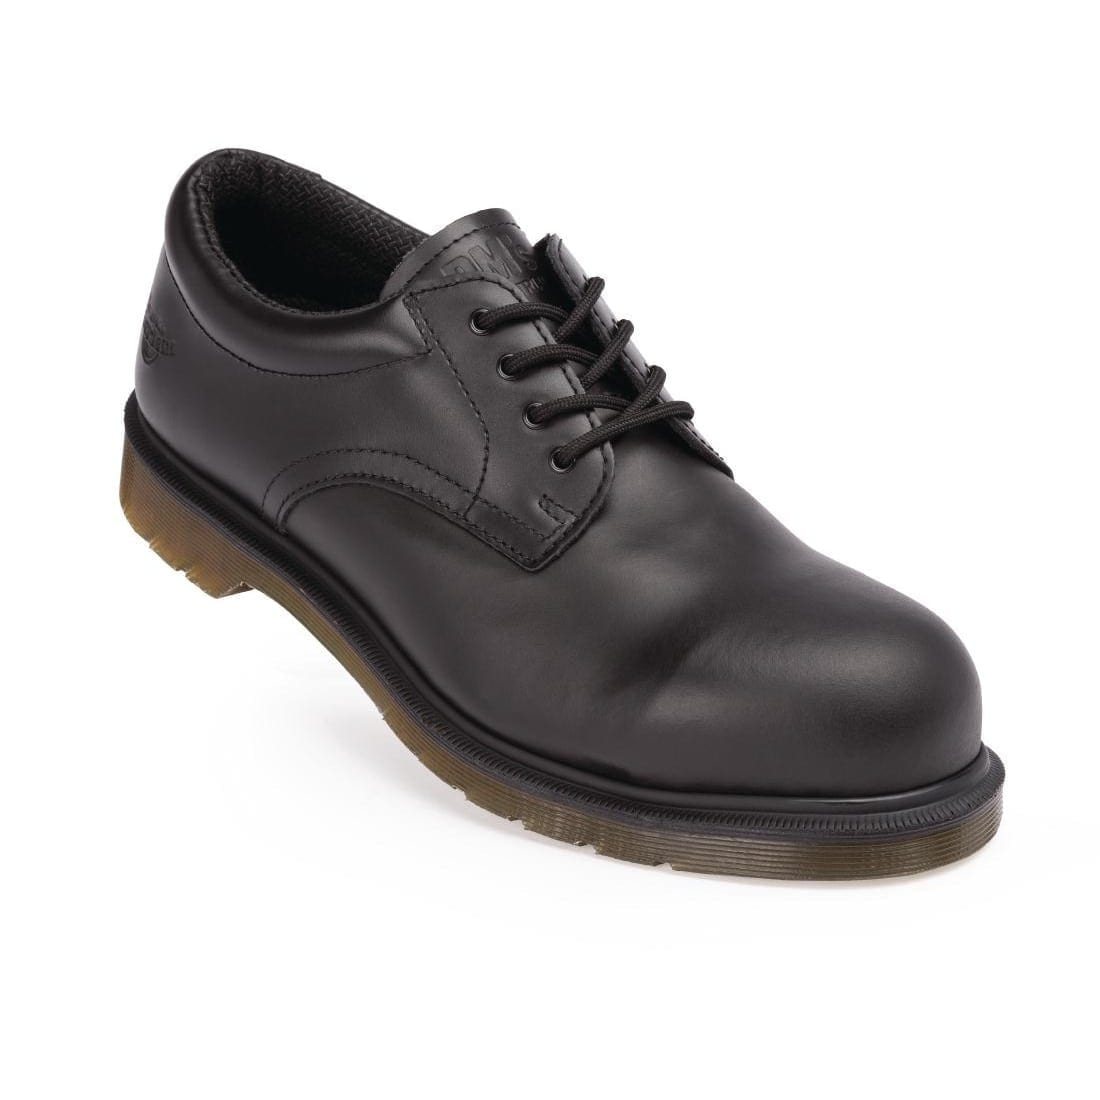 Dr Martens Classic Black Icon Safety Shoe - Size 45-0